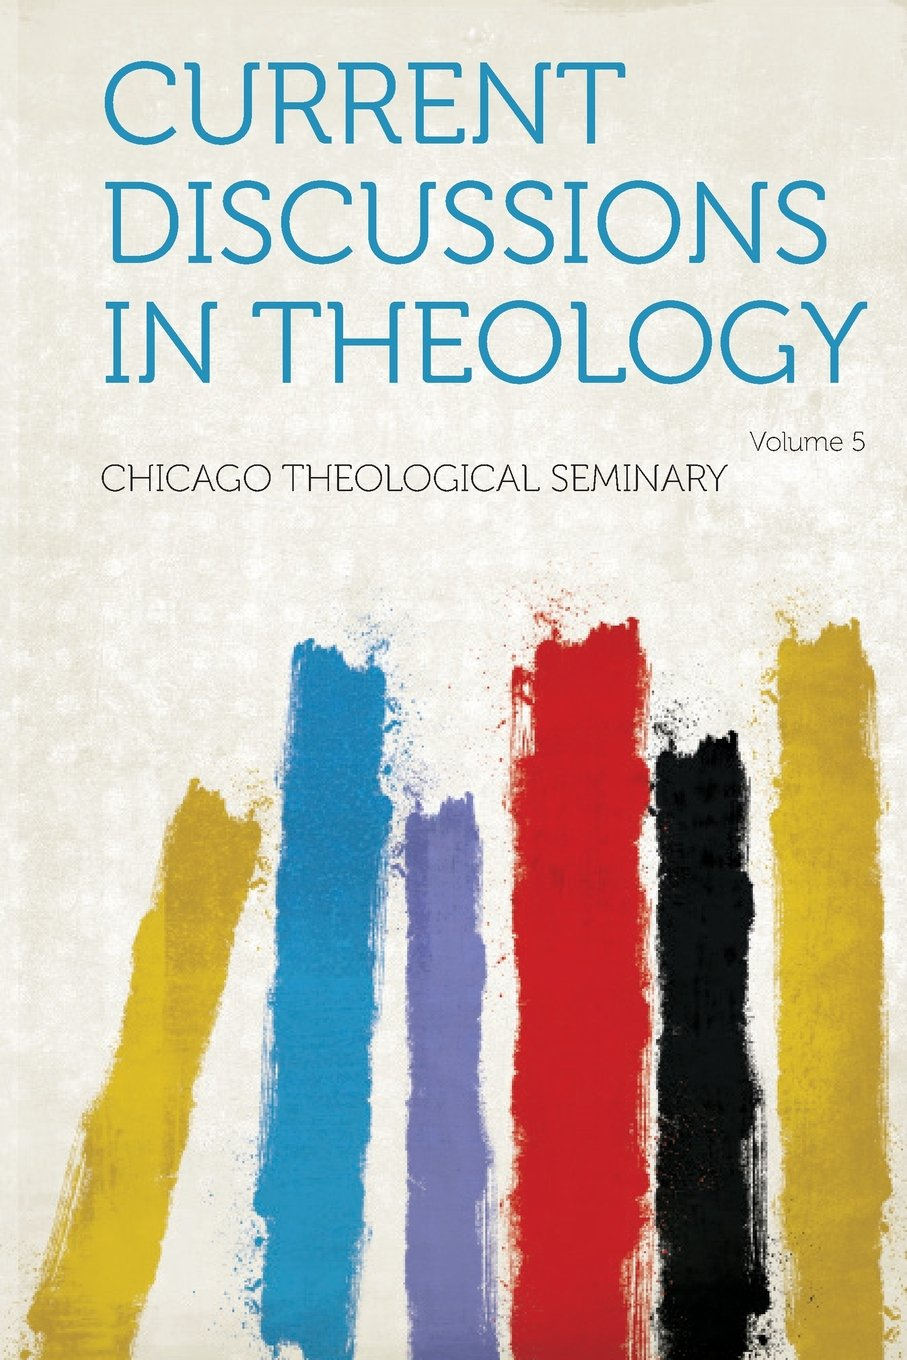 Download Current Discussions in Theology Volume 5 ebook